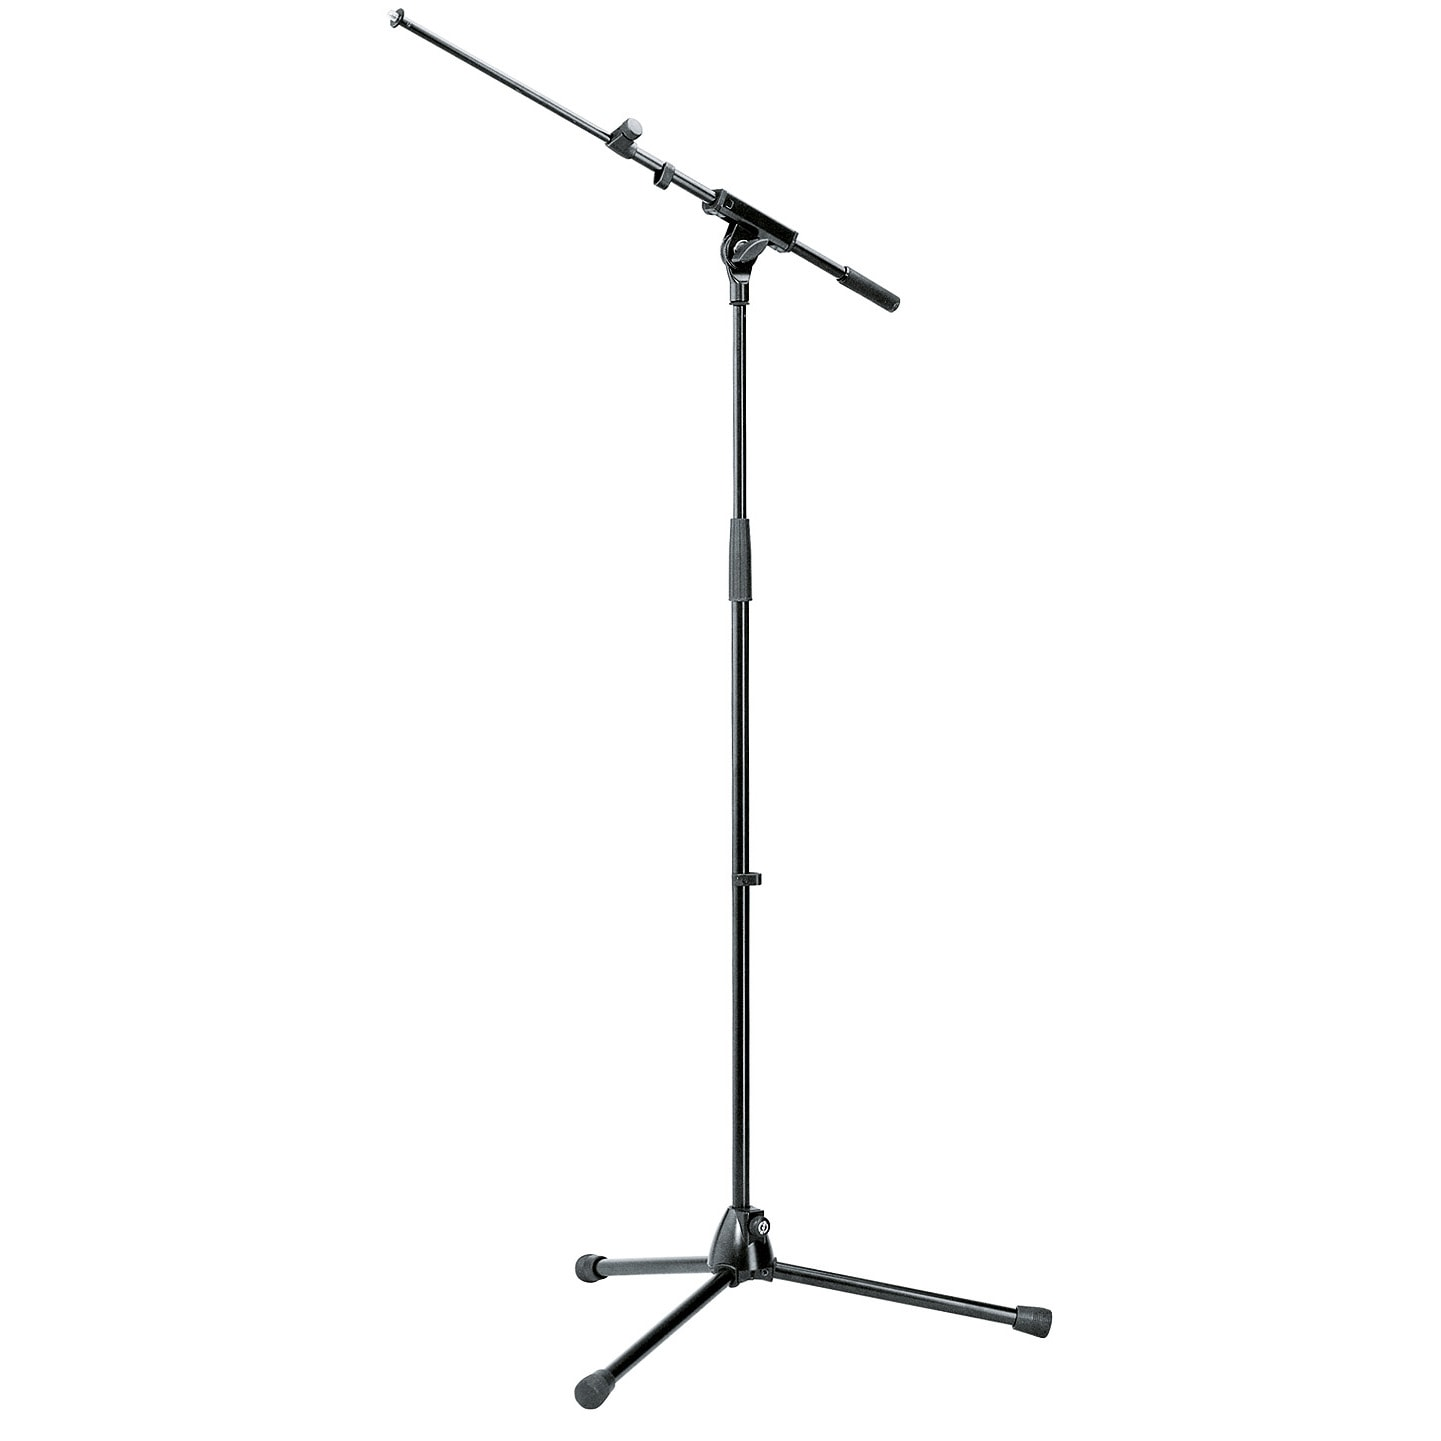 KM210_8 - Microphone stand